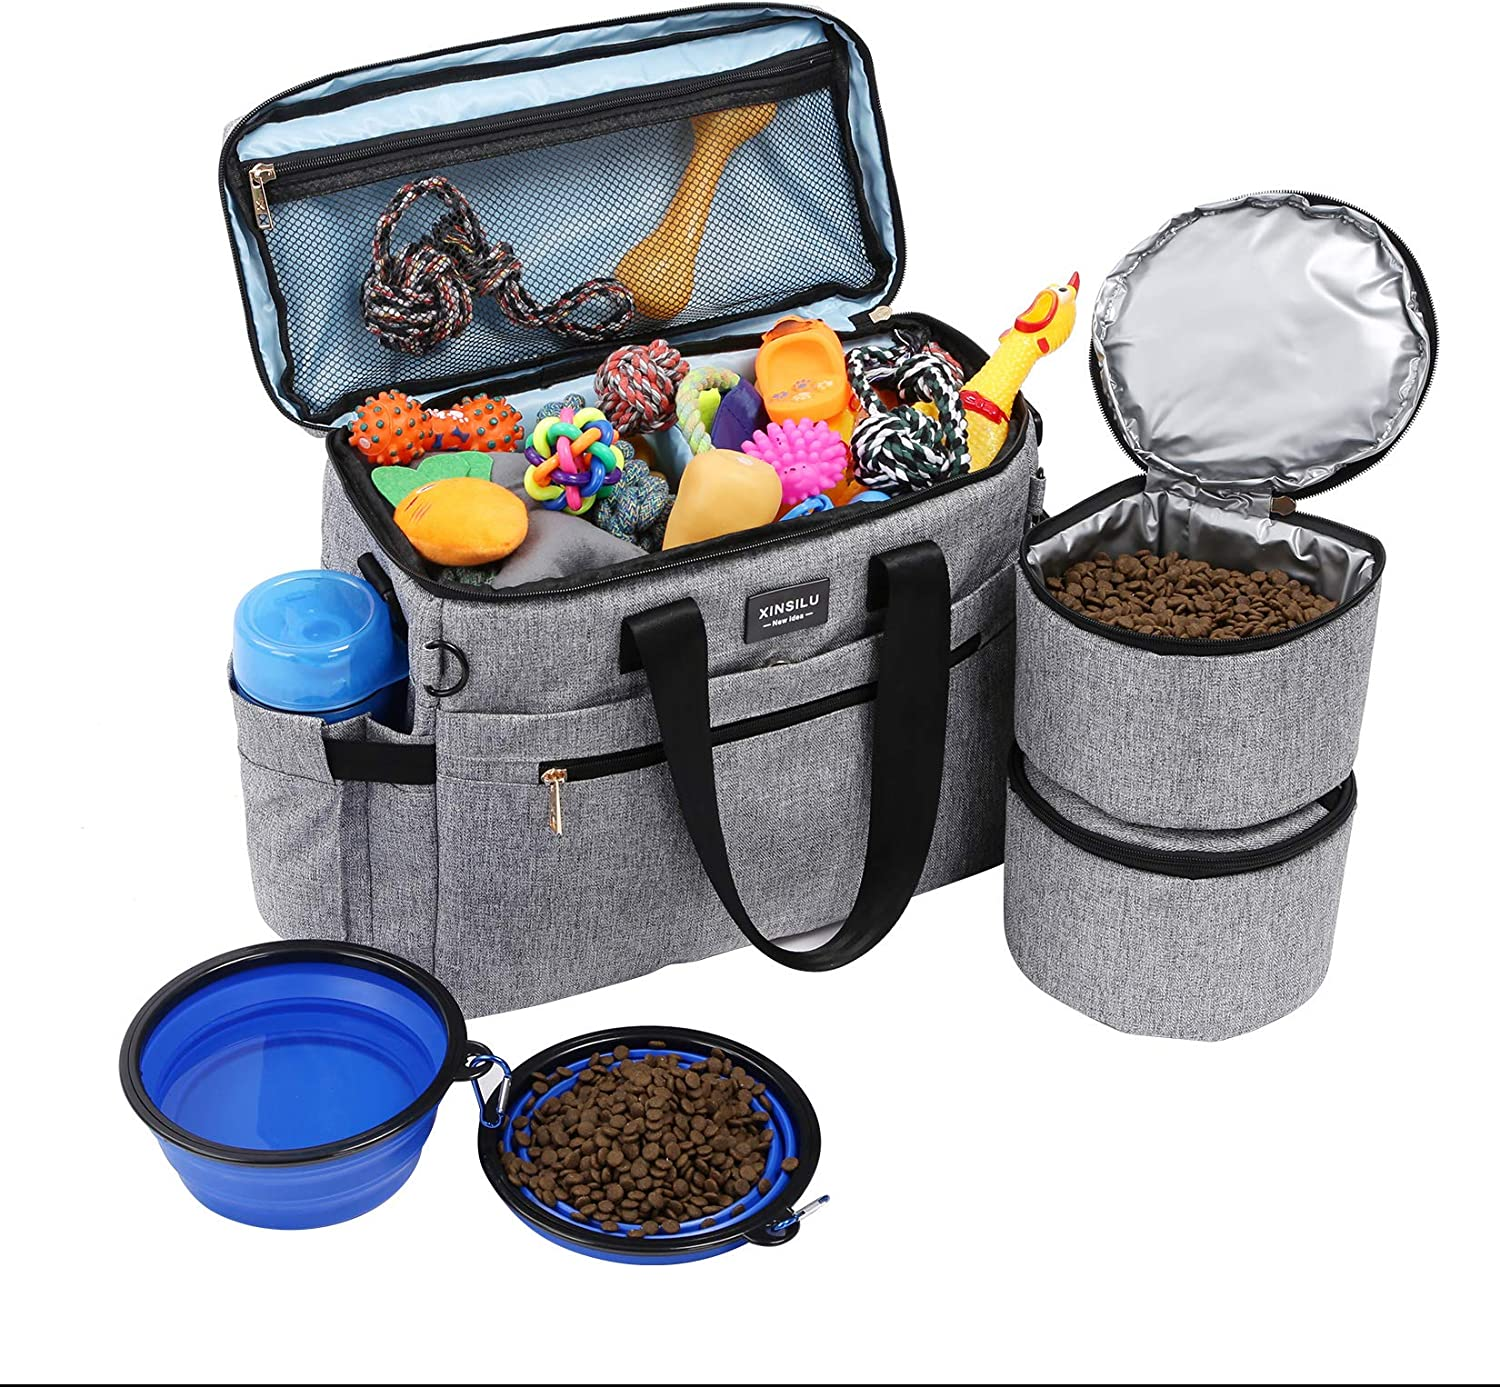 Dog Travel Bag, Pet Owner Multi-Use Dog Outdoor Bag, Include 2X Collapsible Dog Bowls, 2X Food Storage Containers, Airplane Approved, Perfect Weekend Pet Travel Set for Dog, Cat, Gray